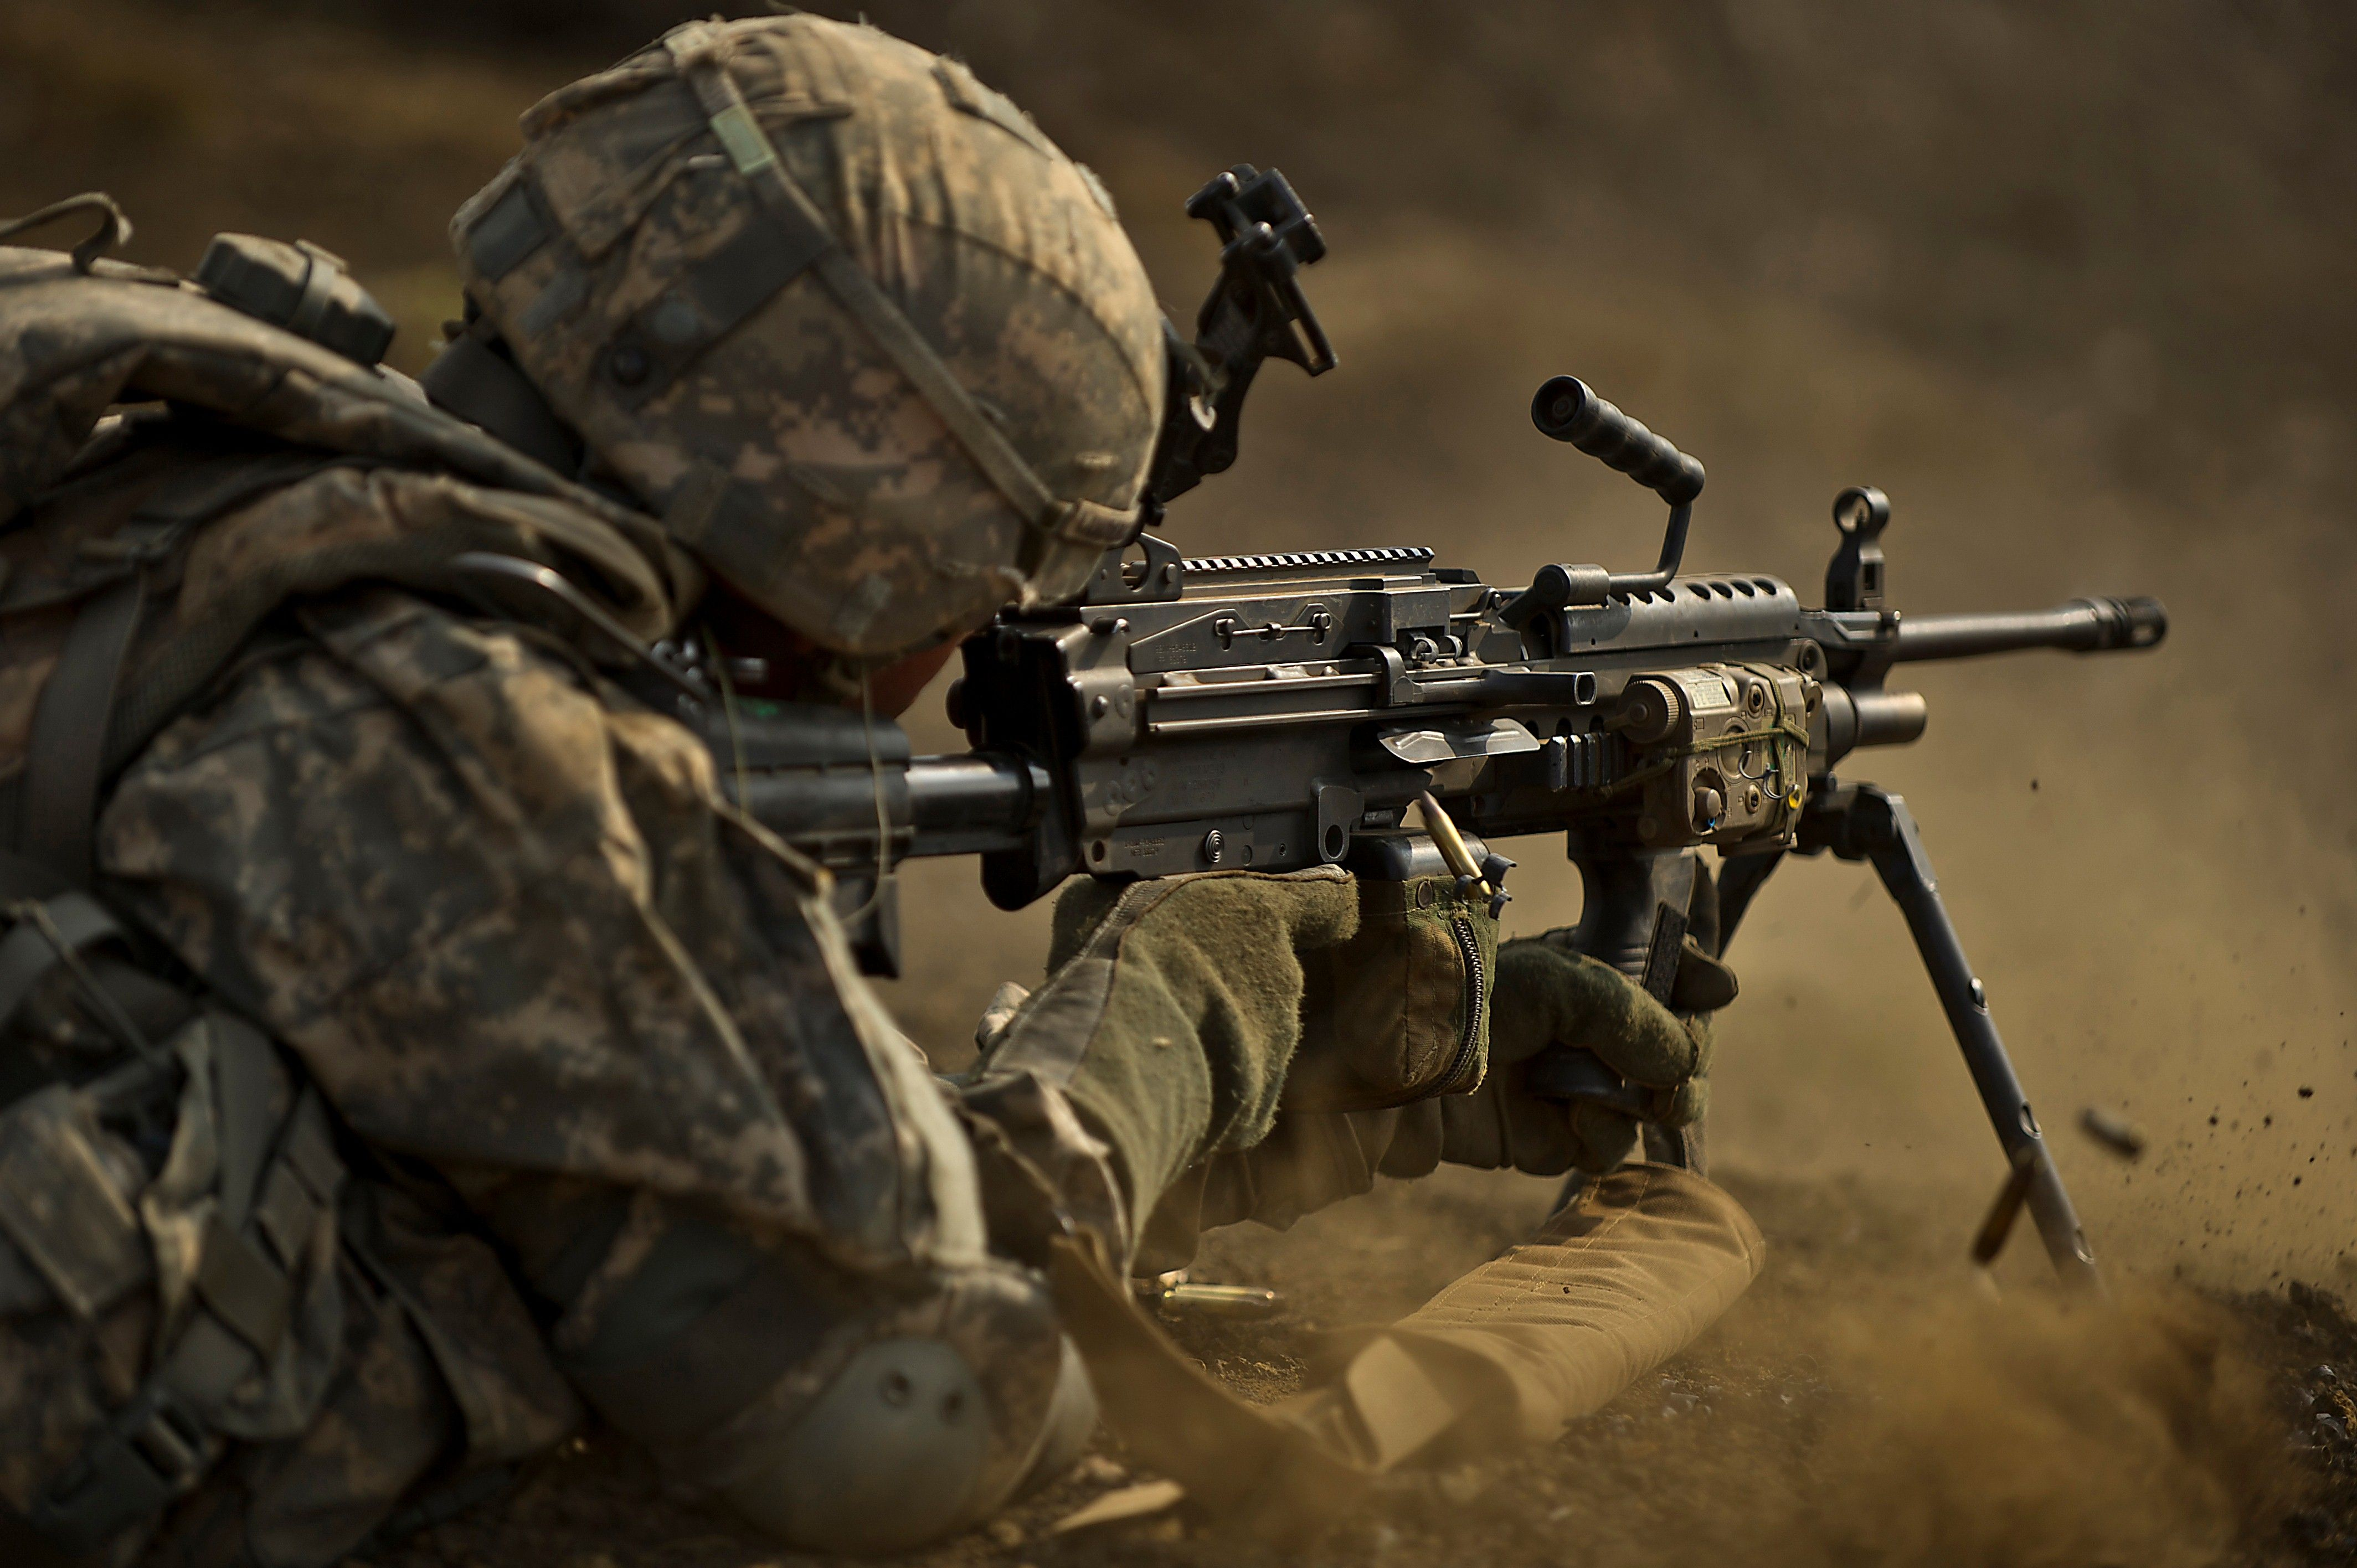 Download Us Army Wallpaper Hd 51: HD Army Wallpapers And Background Images For Download